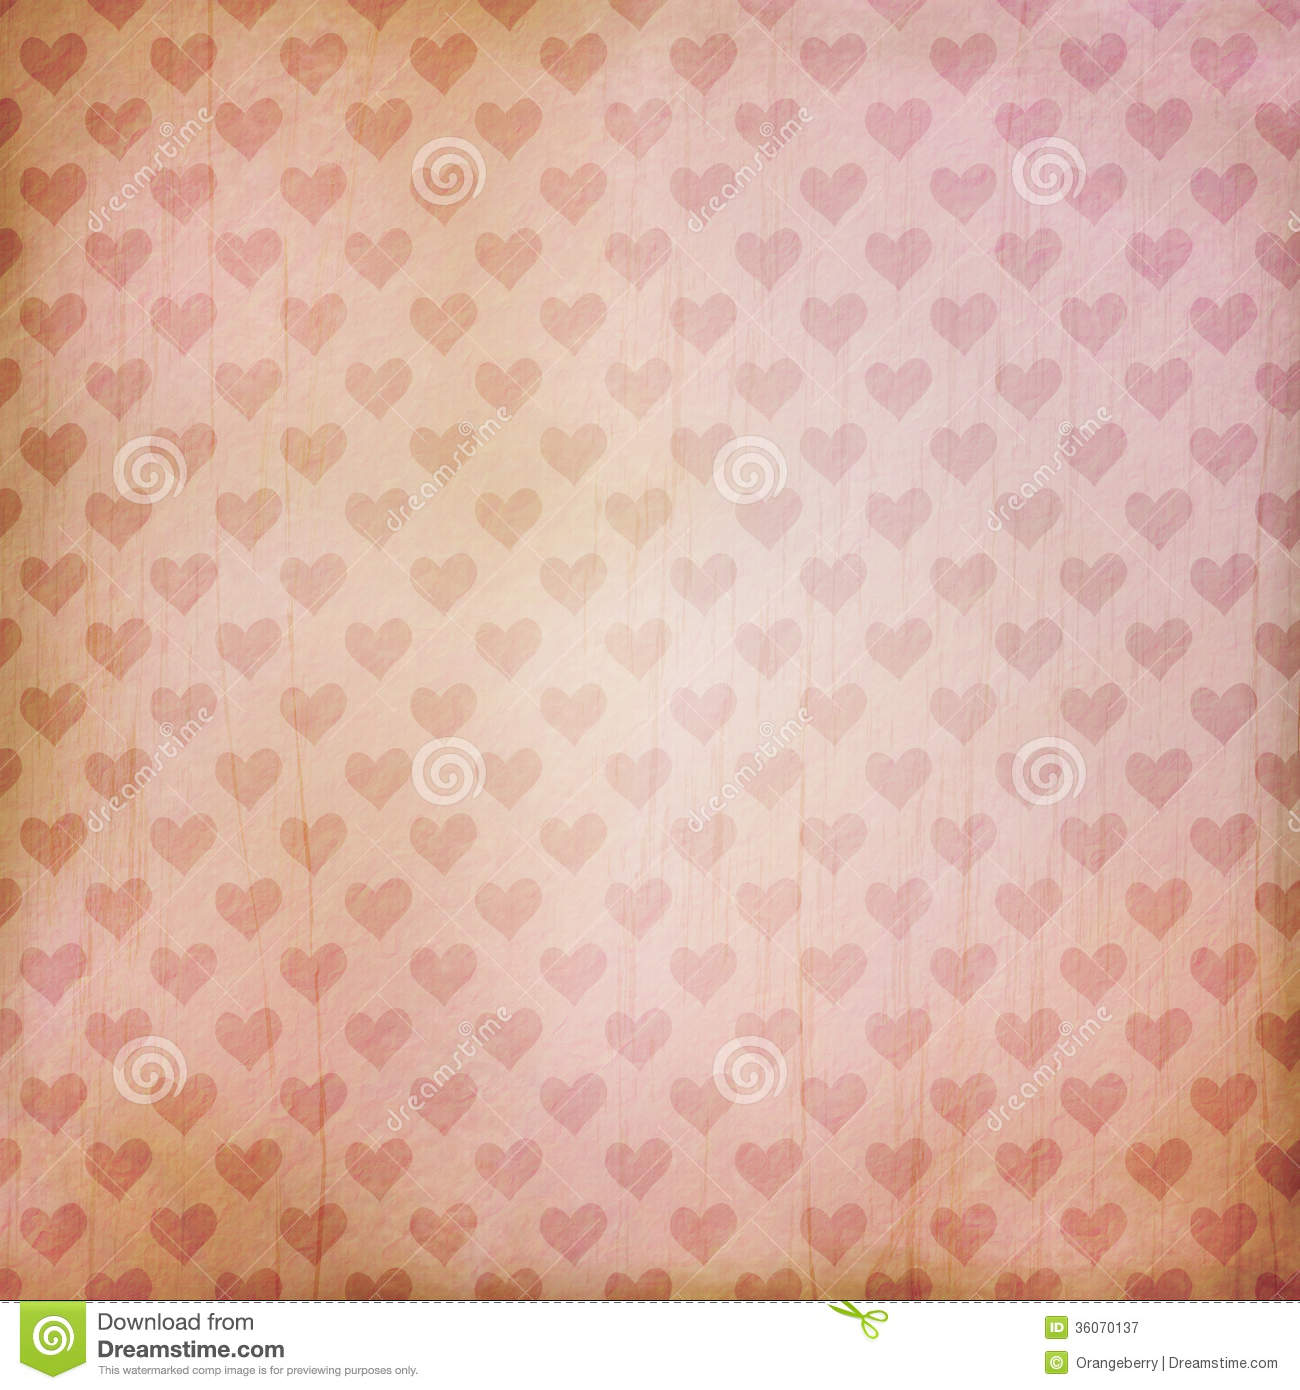 Baby Girl Pattern Wallpaper Vintage Background With Hearts Stock Illustration Image